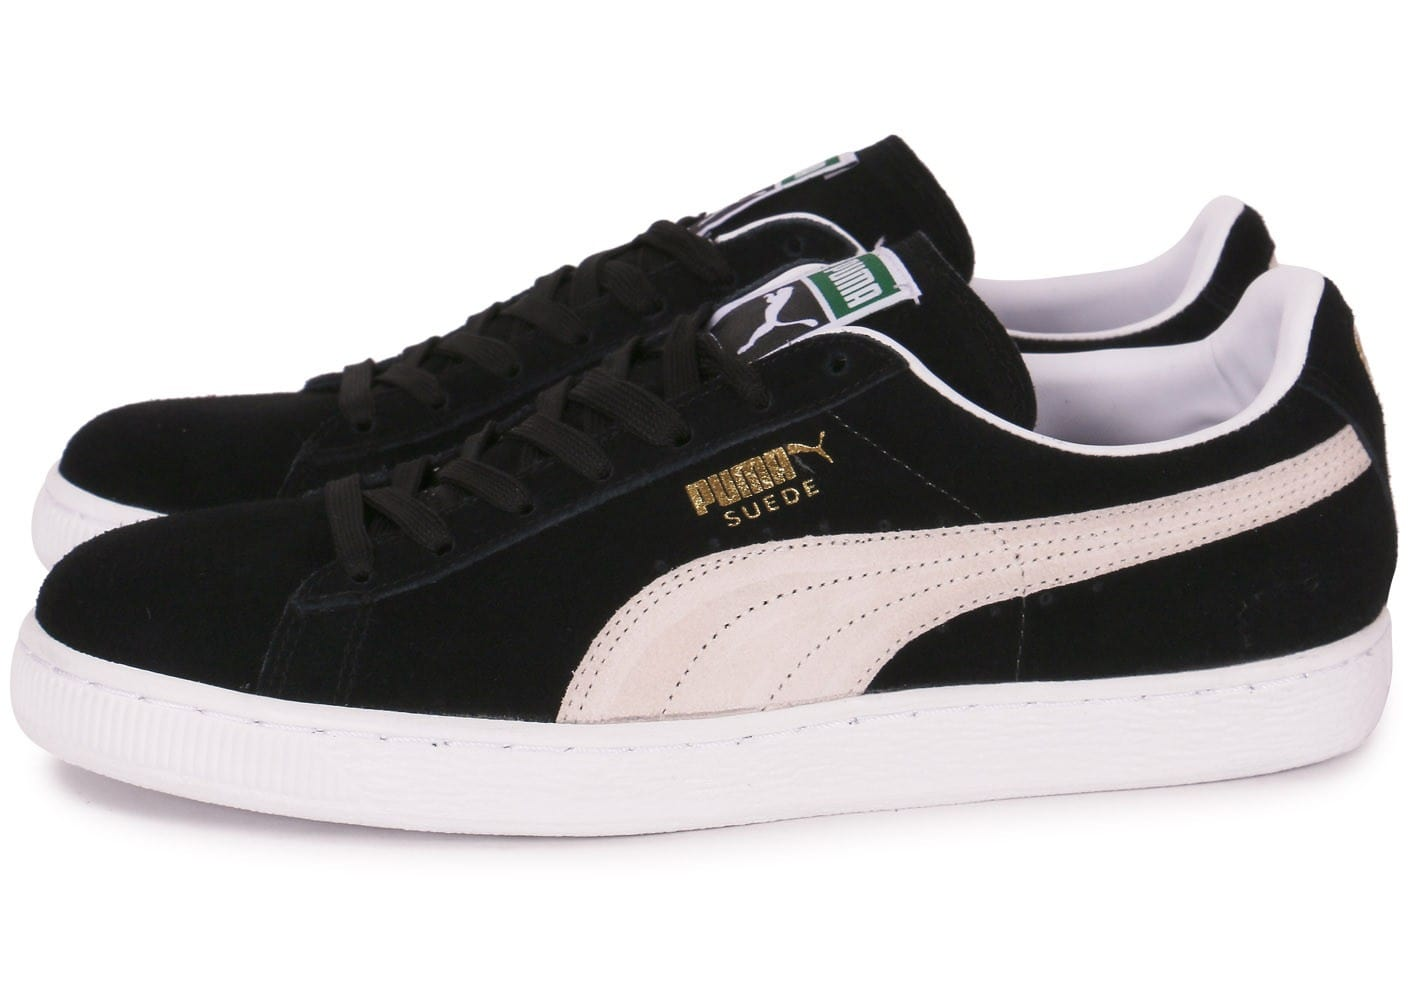 Puma Basket Classic, Basses homme- Noir (Black/White)- 4 UK 37 EU